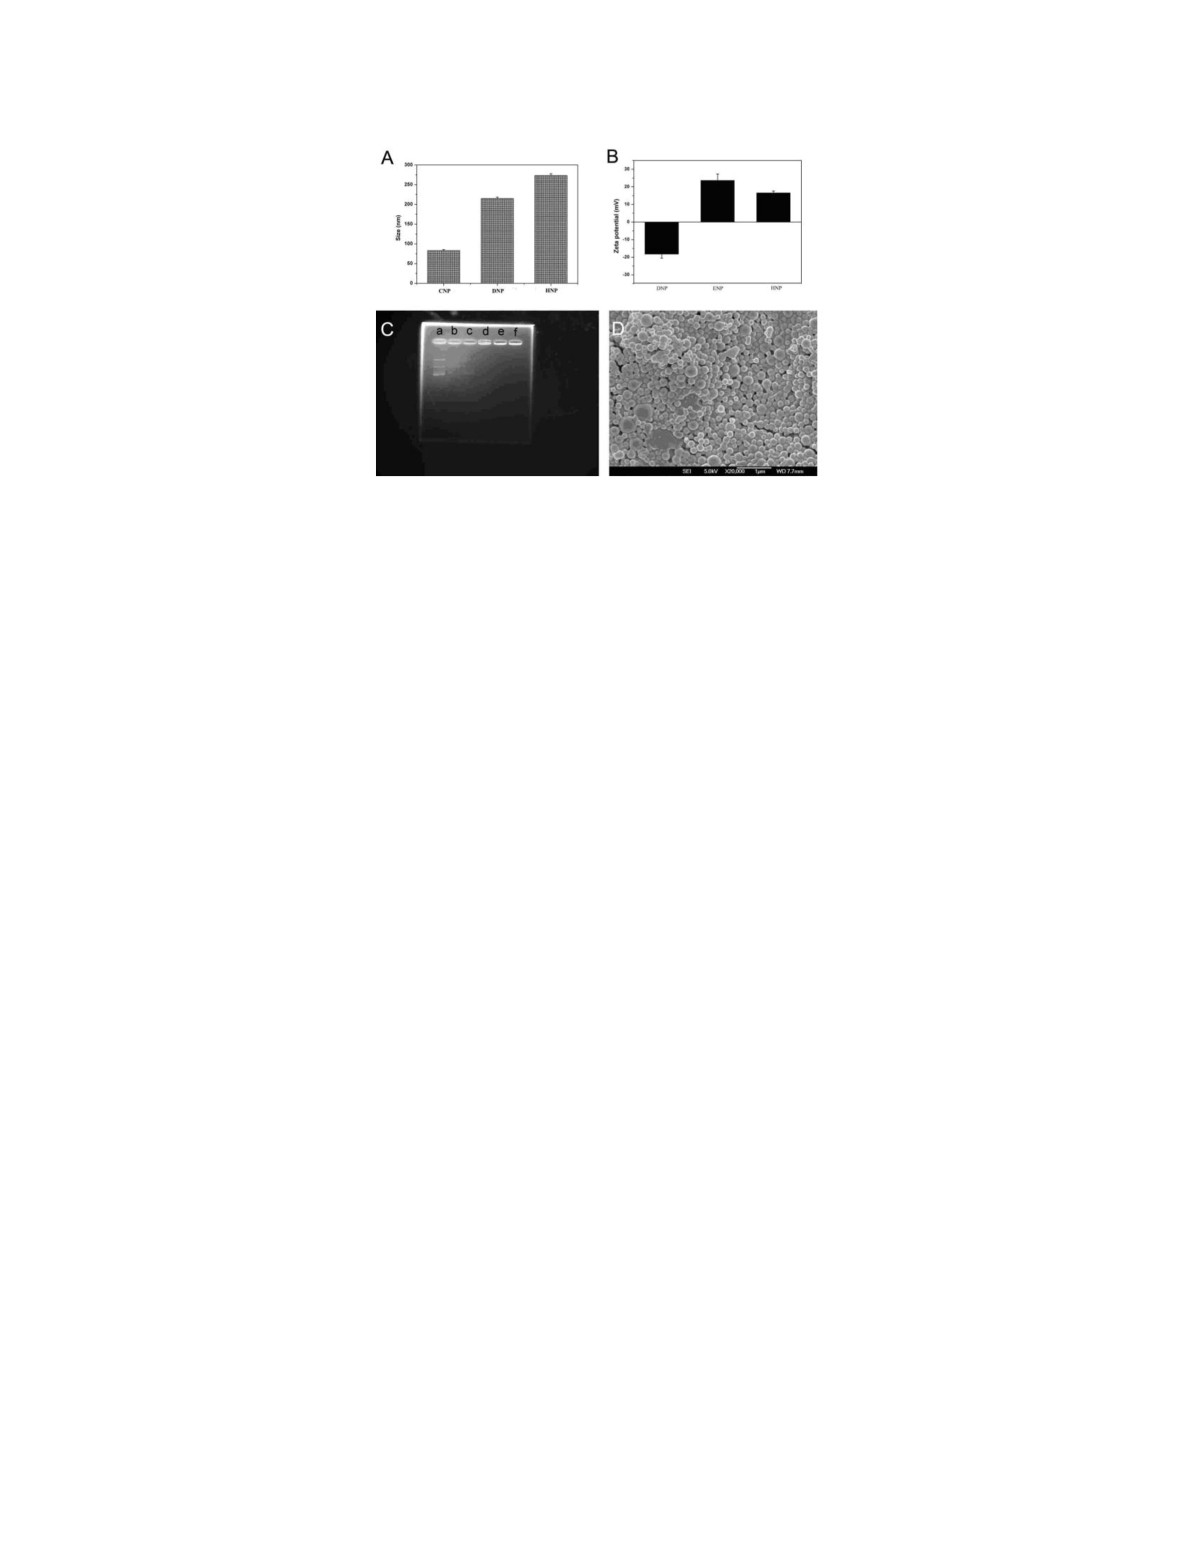 http://static-content.springer.com/image/art%3A10.1186%2F1556-276X-8-161/MediaObjects/11671_2012_Article_1408_Fig4_HTML.jpg